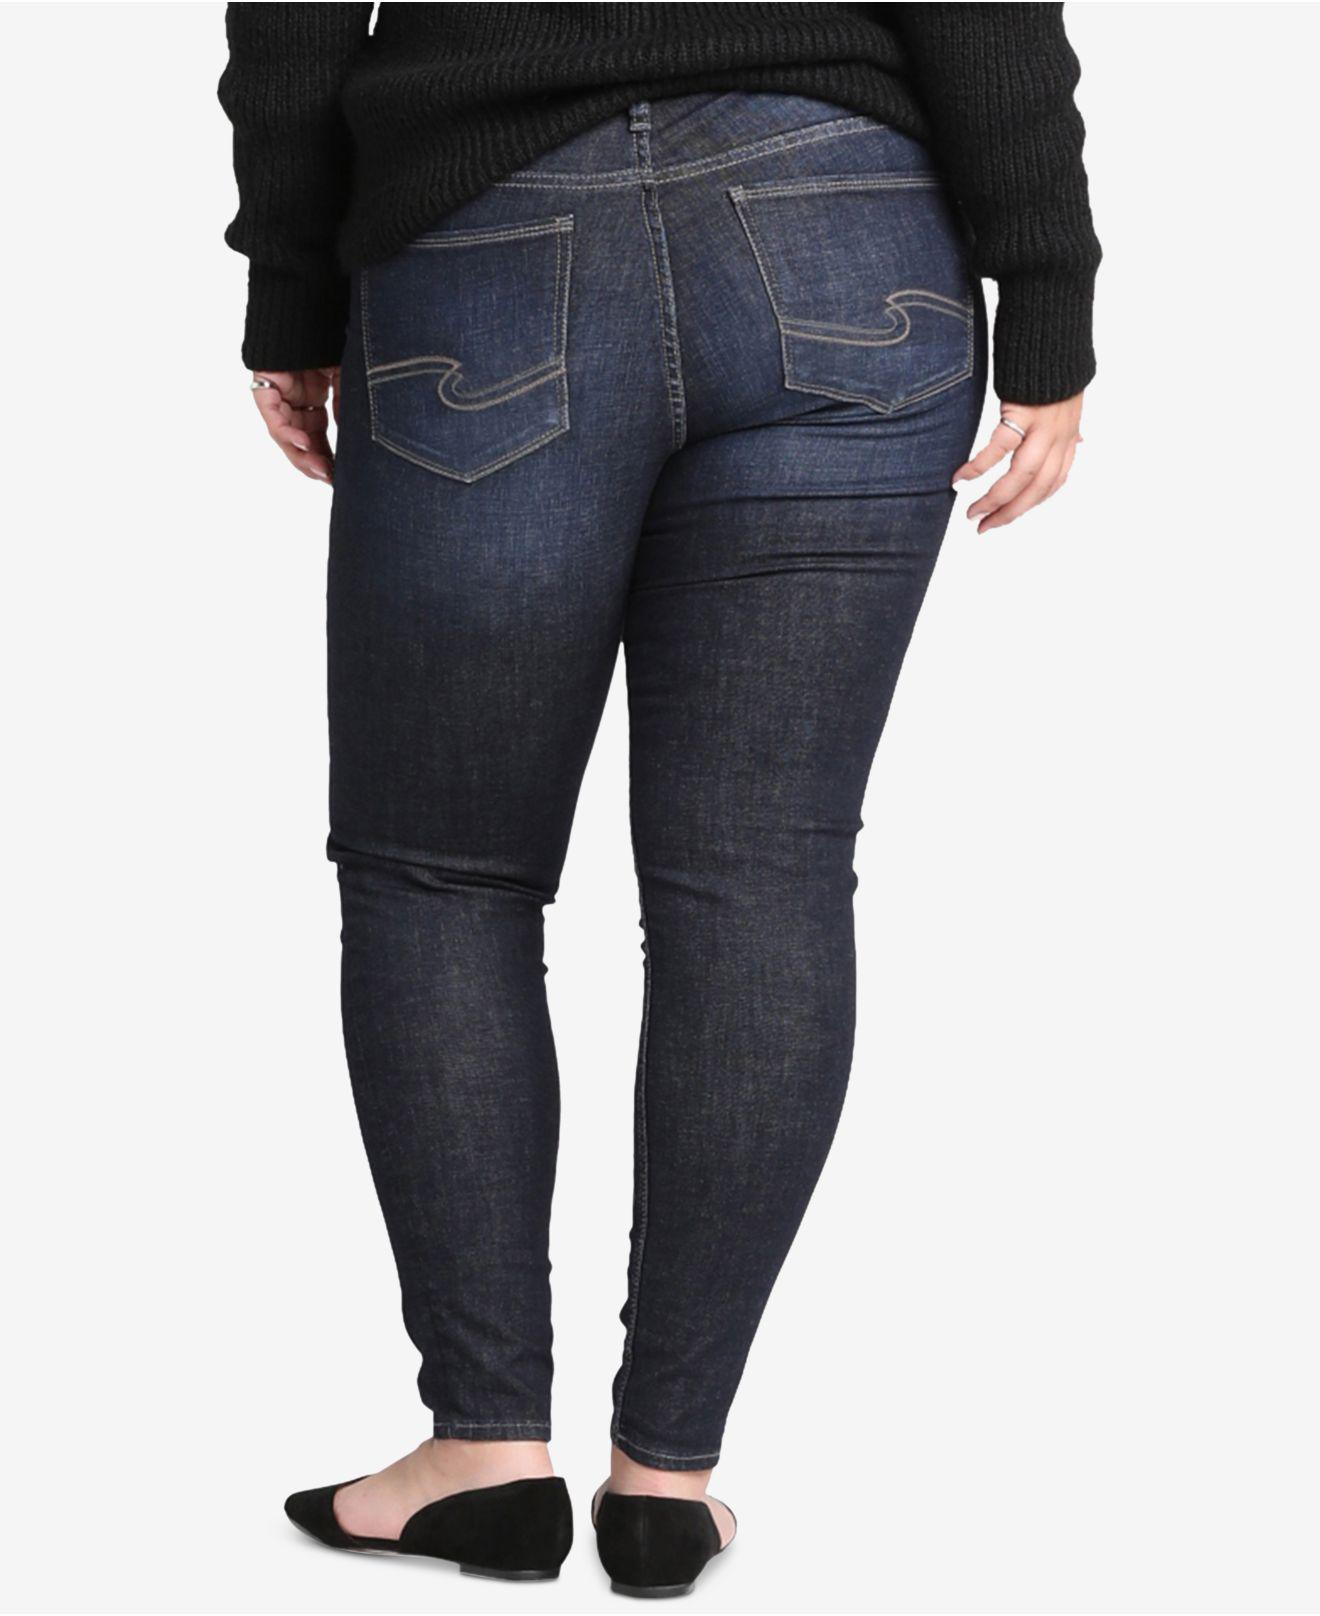 77d9580c15f Lyst - Silver Jeans Co. Plus Size Elyse Curvy-fit Skinny Jeans in Blue